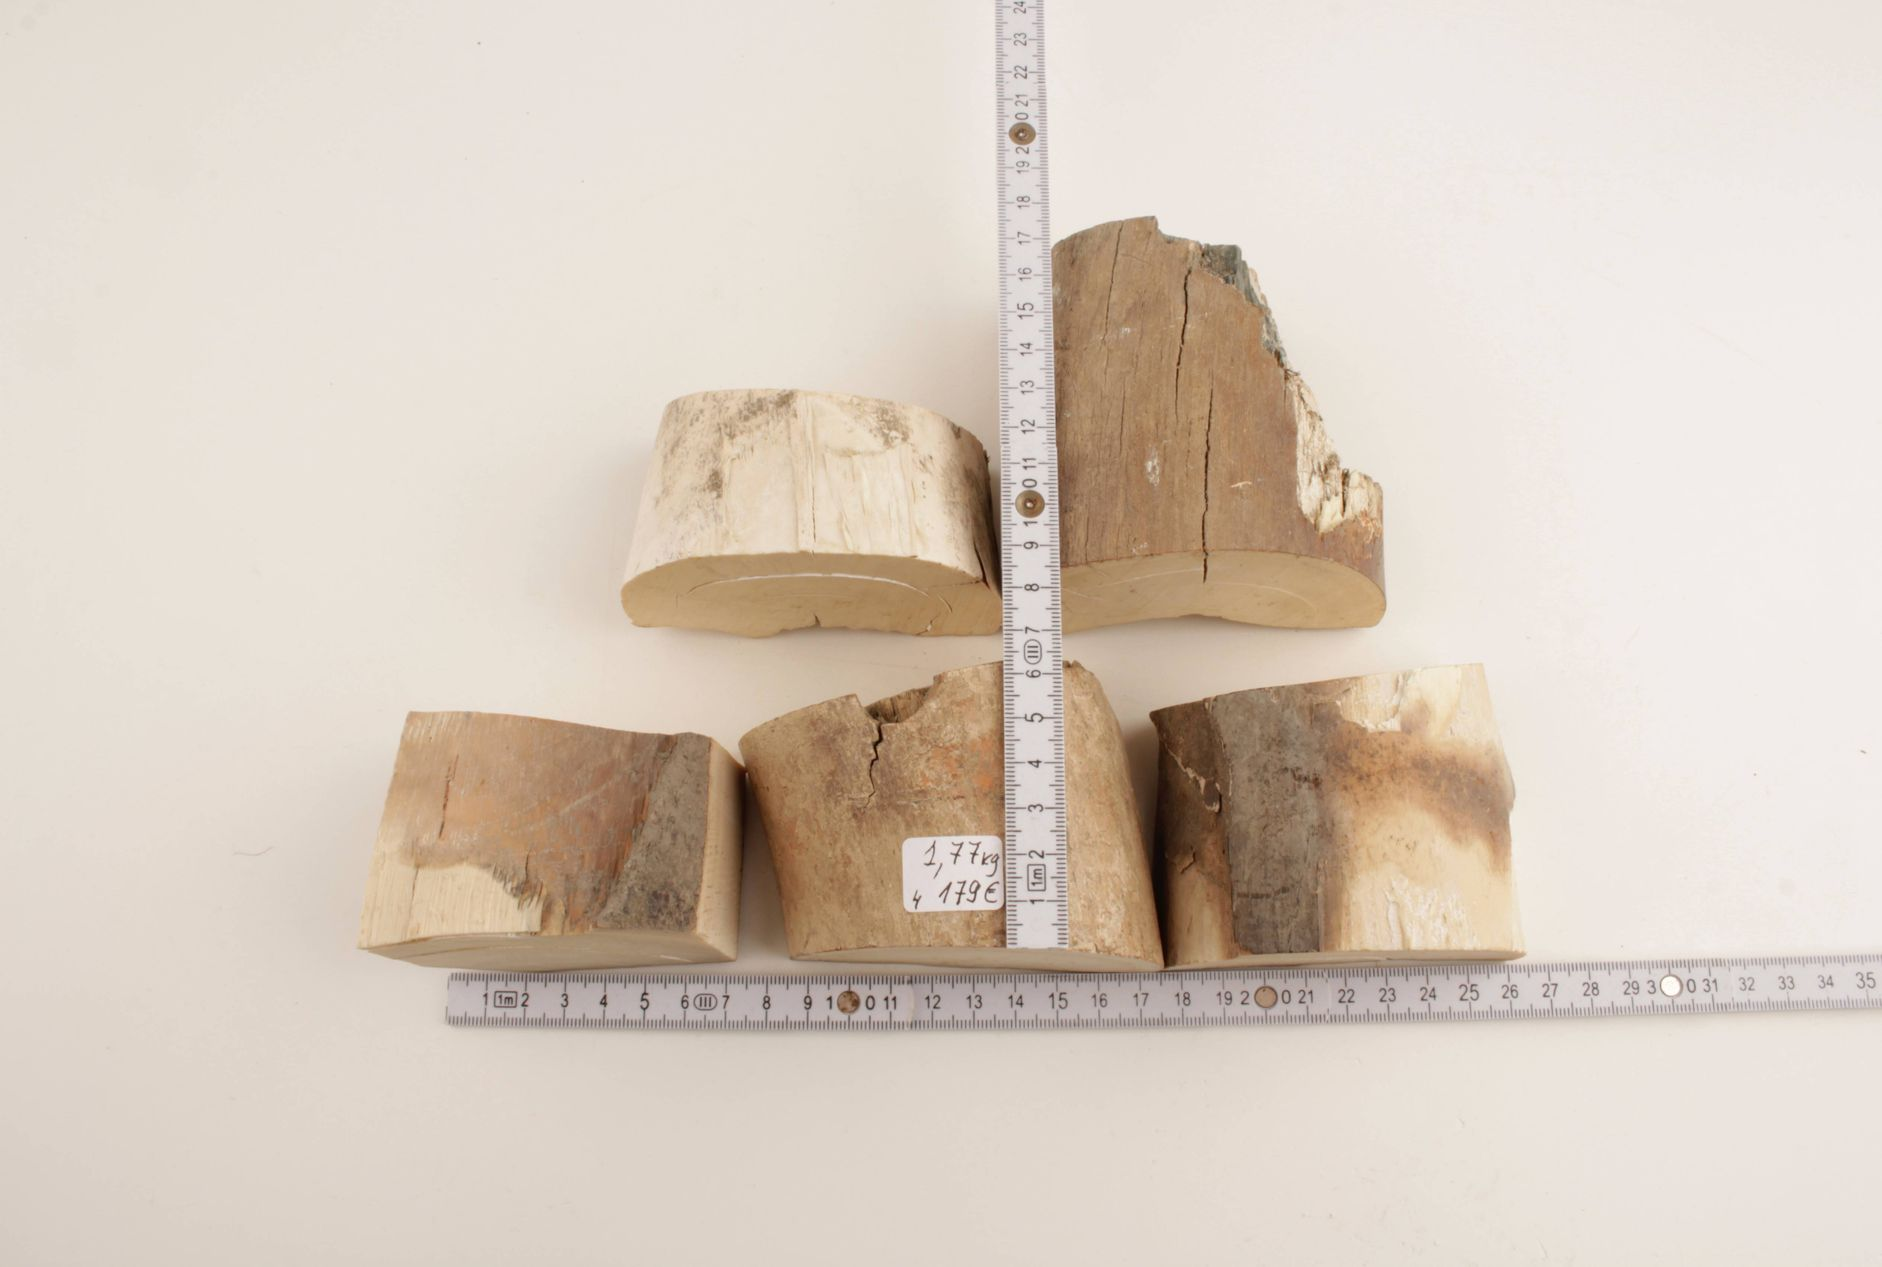 Untreated mammoth tusk pieces